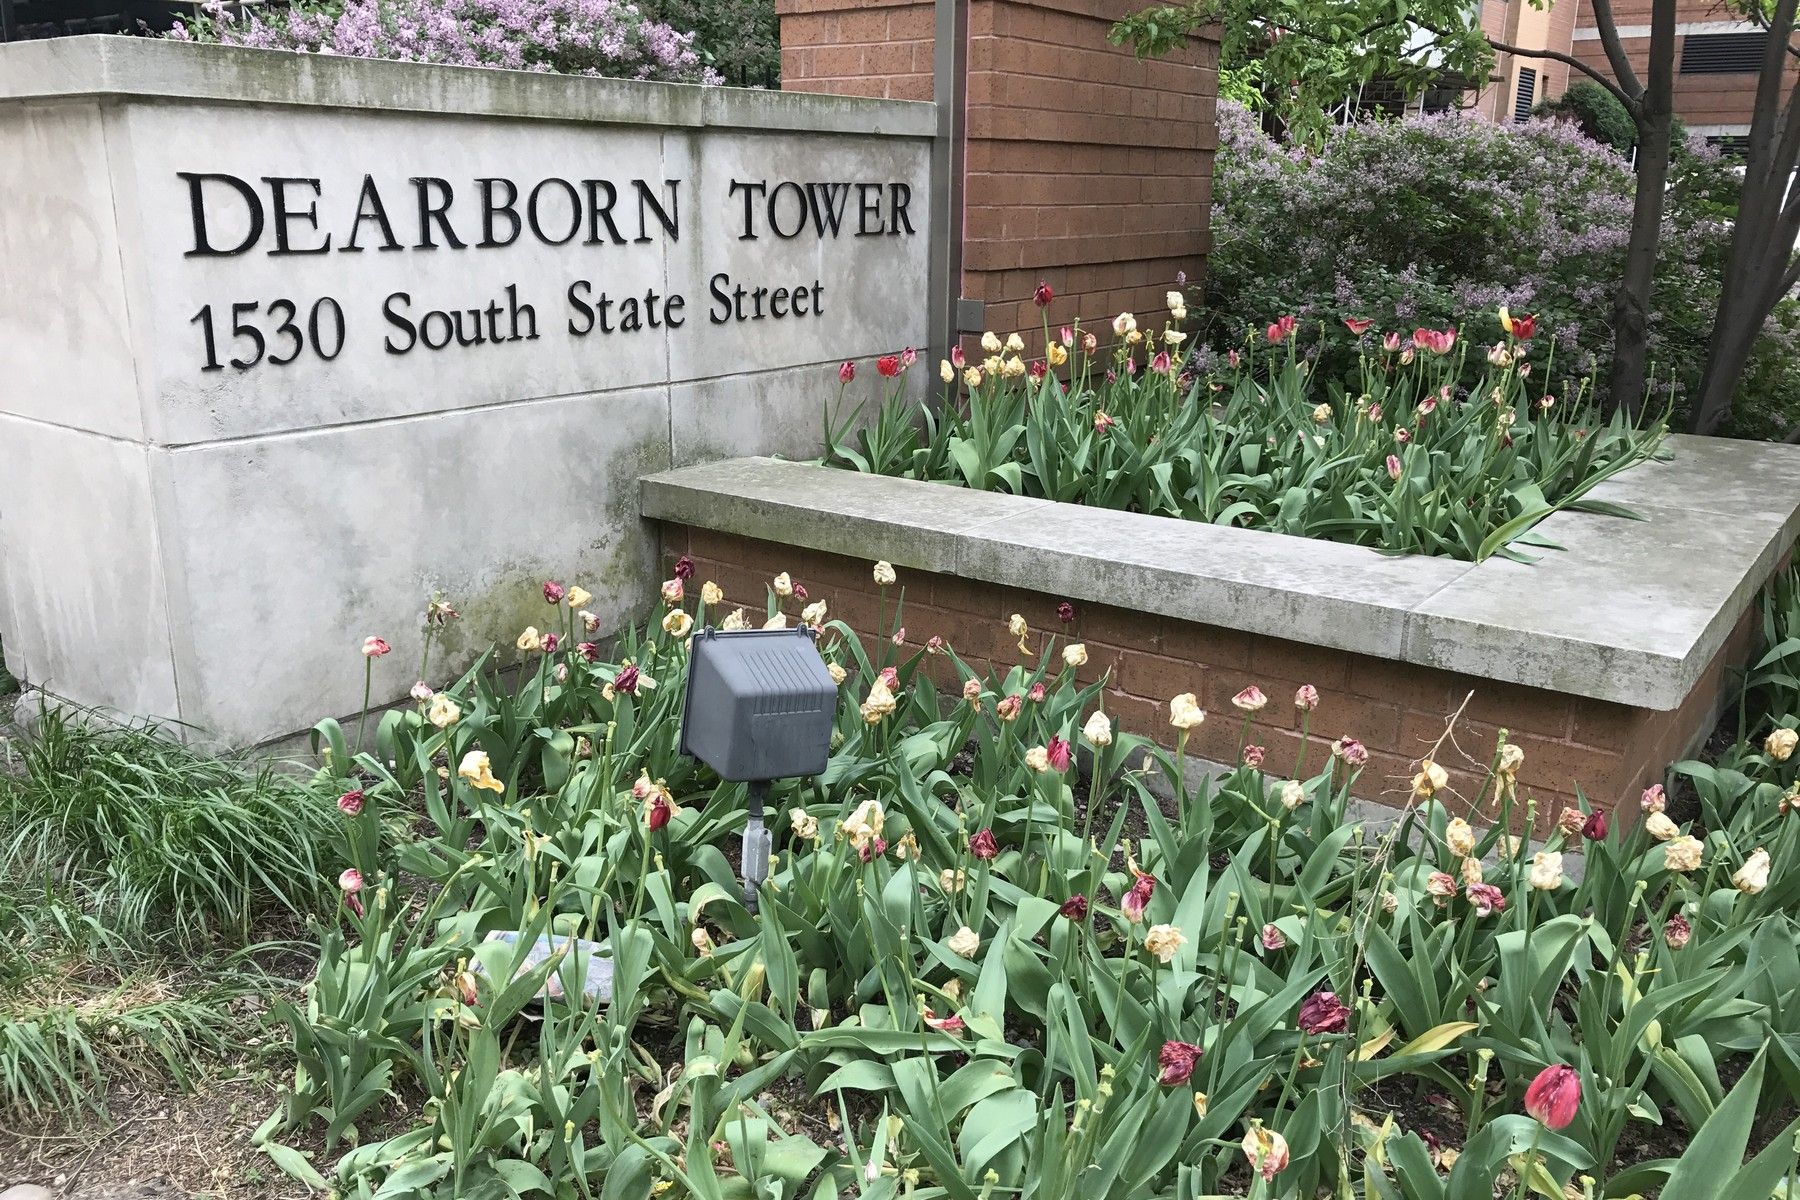 Condominium for Sale at Dearborn Tower 1530 S. State Street, Unit 712 Near South Side, Chicago, Illinois, 60605 United States